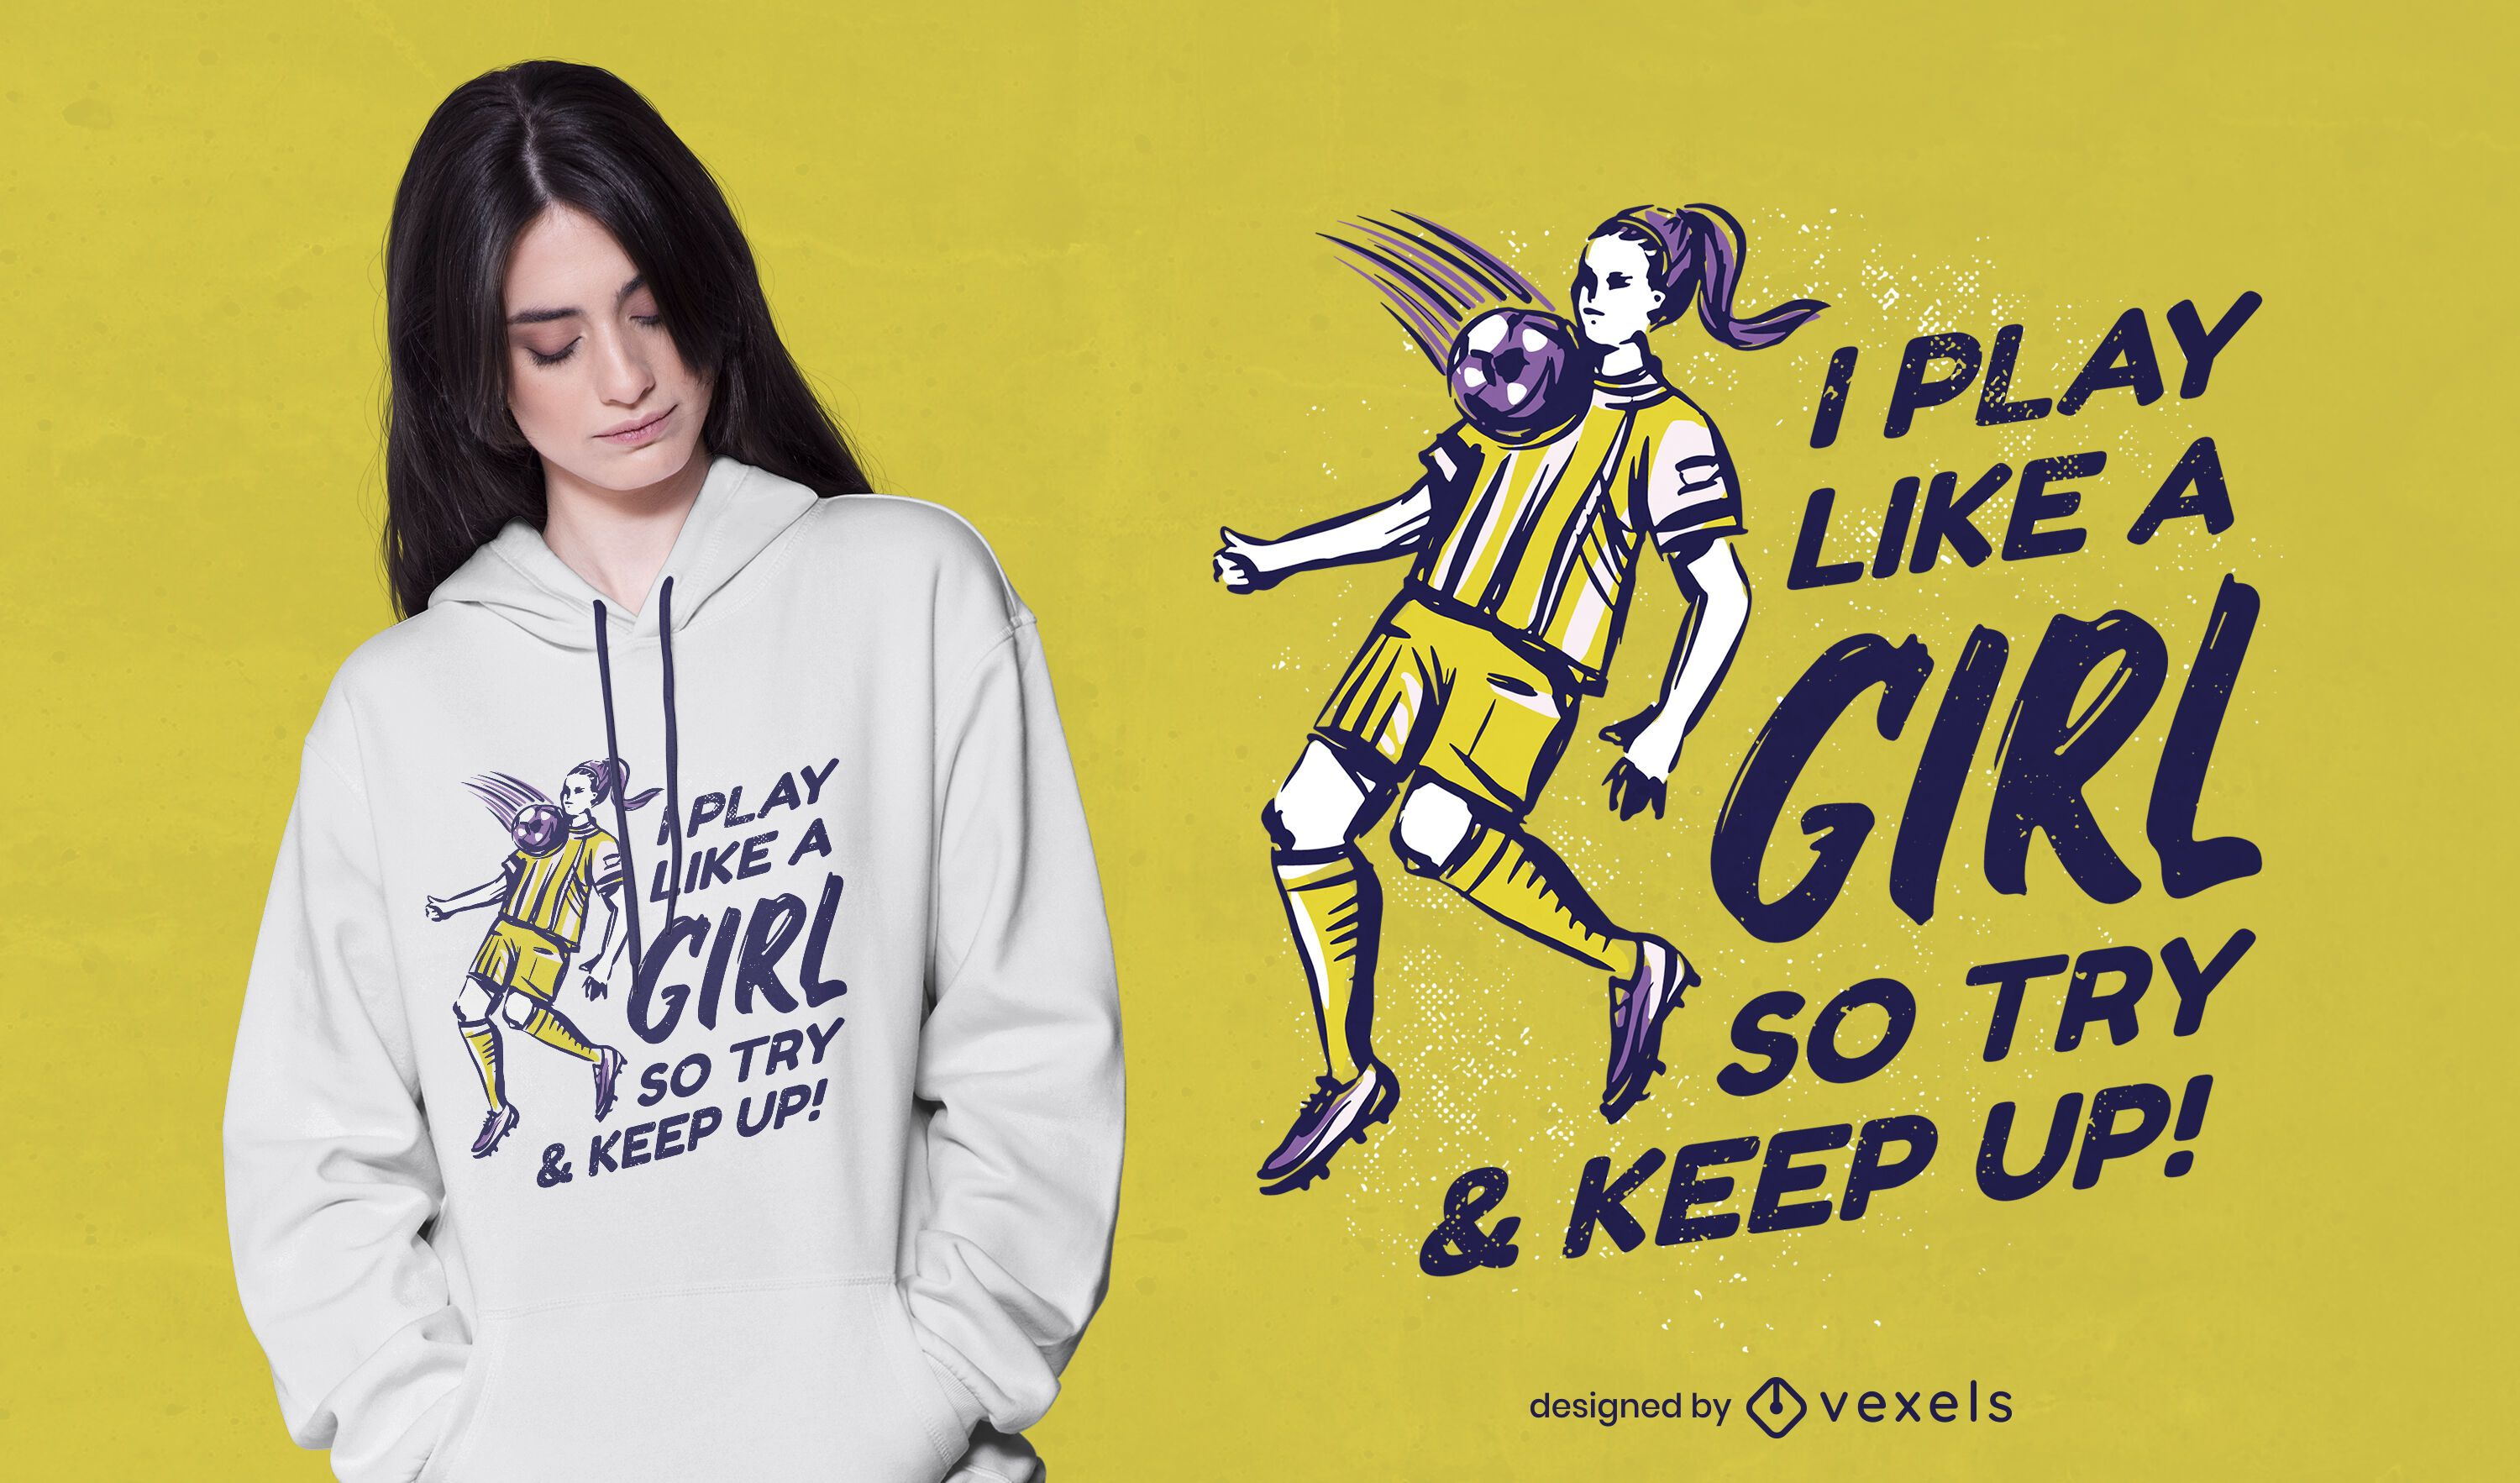 Girl soccer player quote t-shirt design